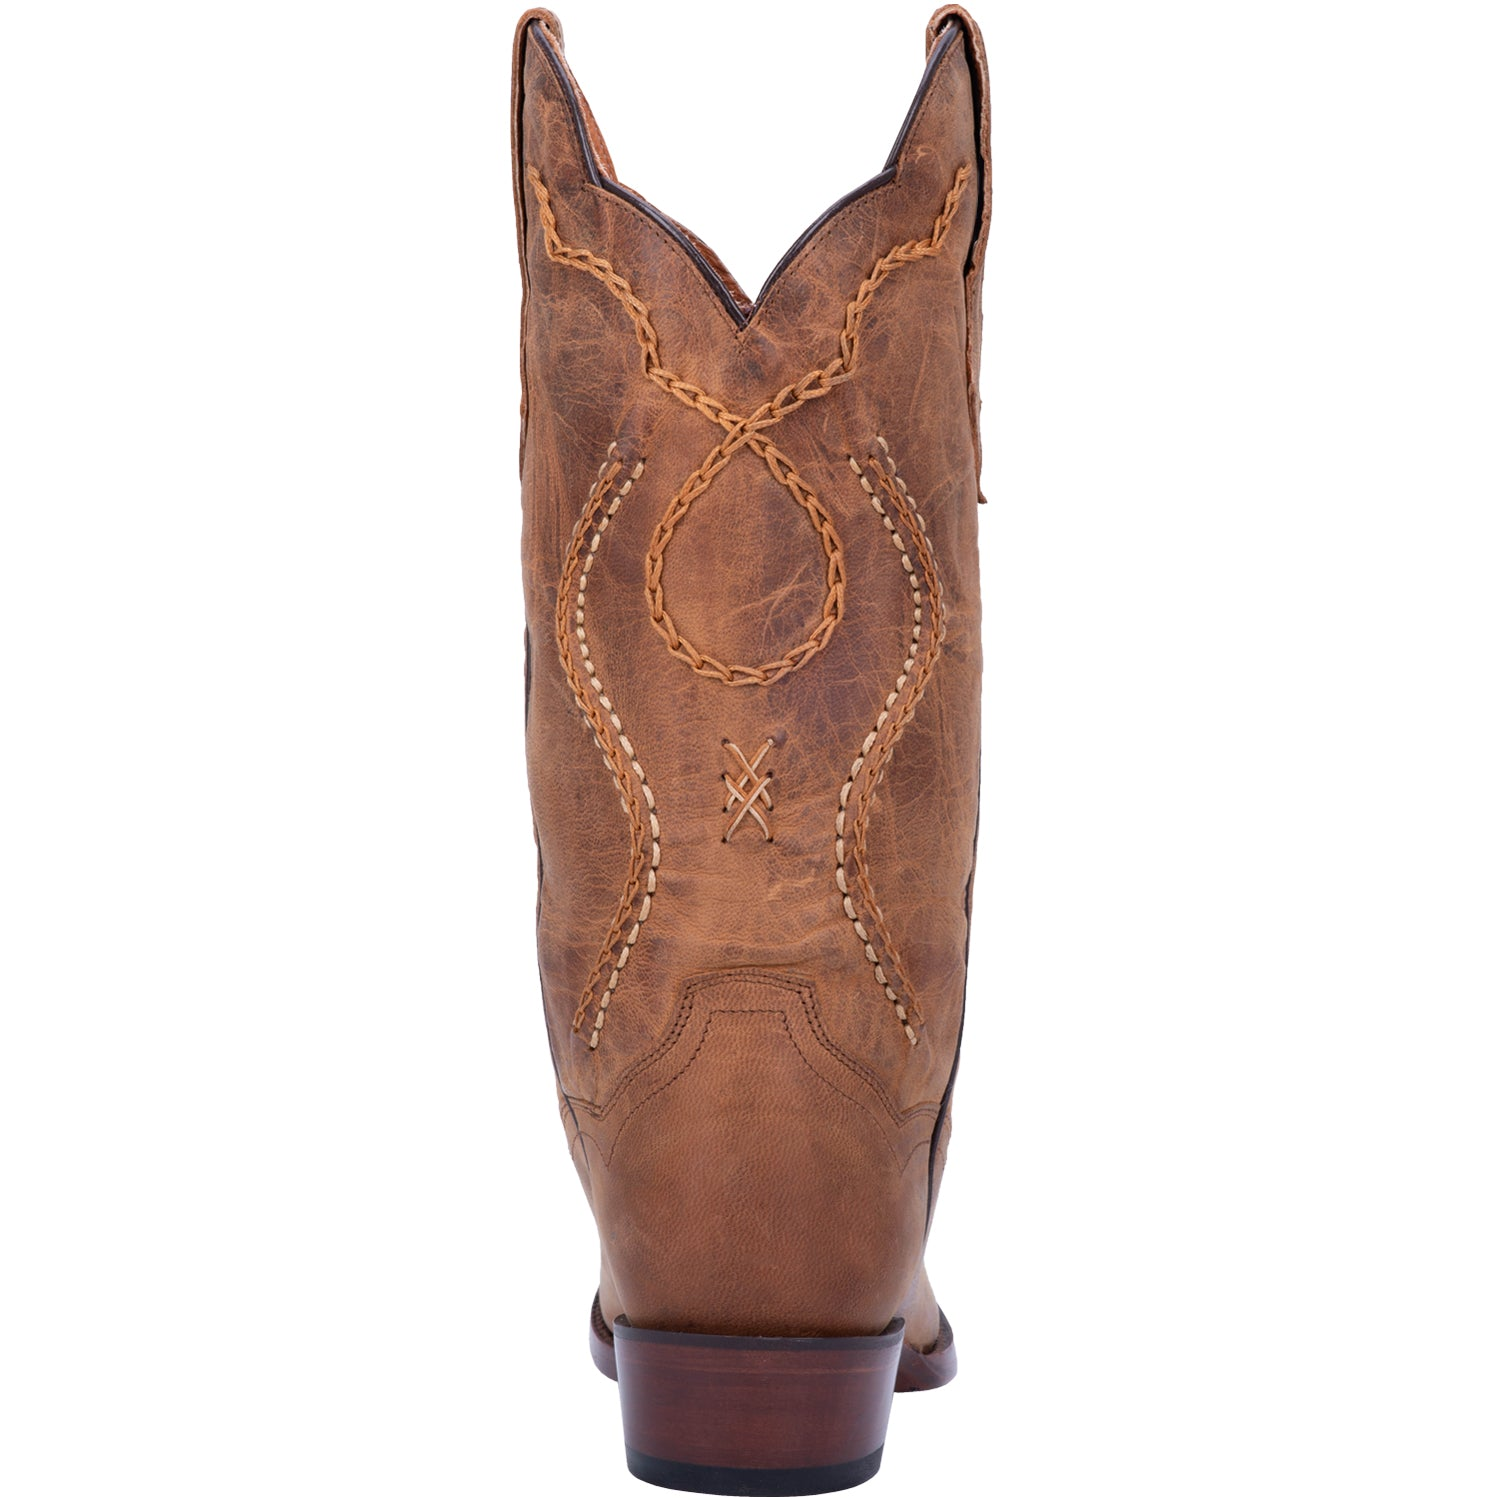 ALBANY LEATHER BOOT